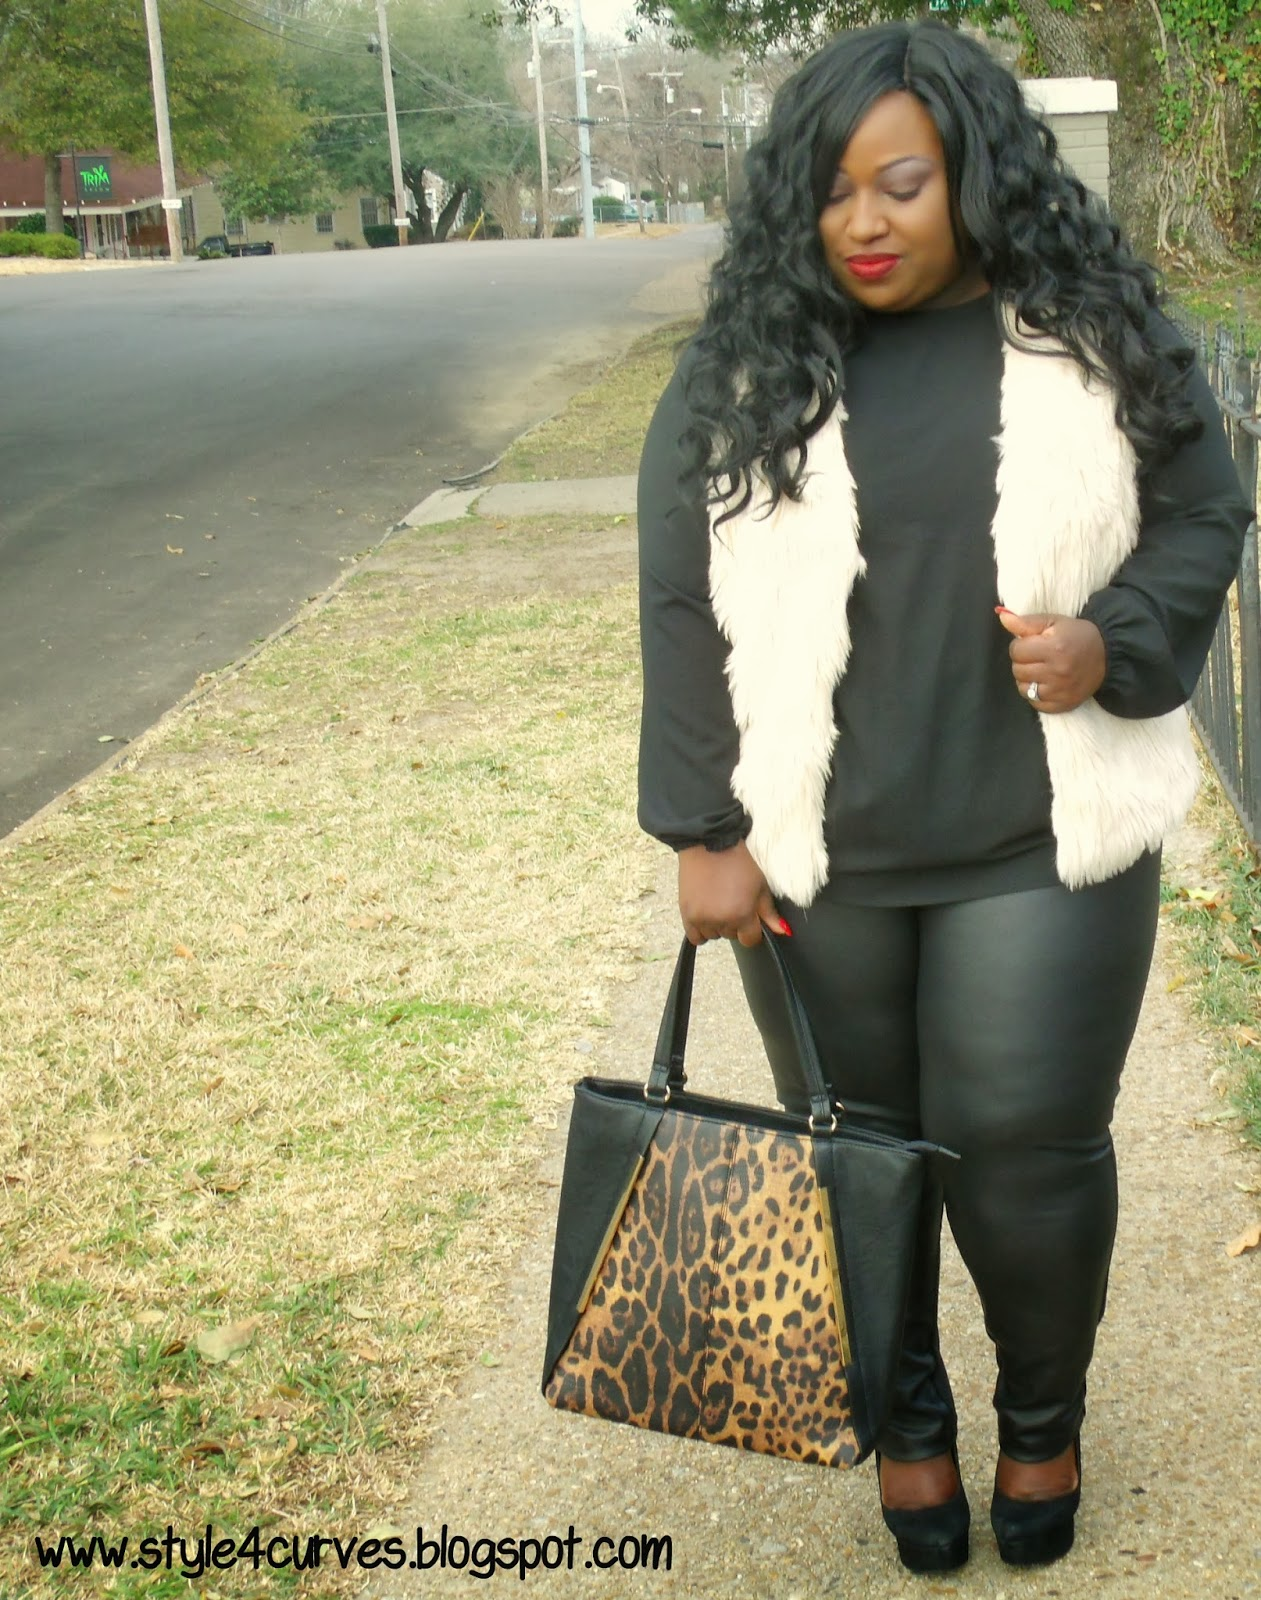 Style 4 Curves --For the Curvy Confident Woman: FUR-REALNESS